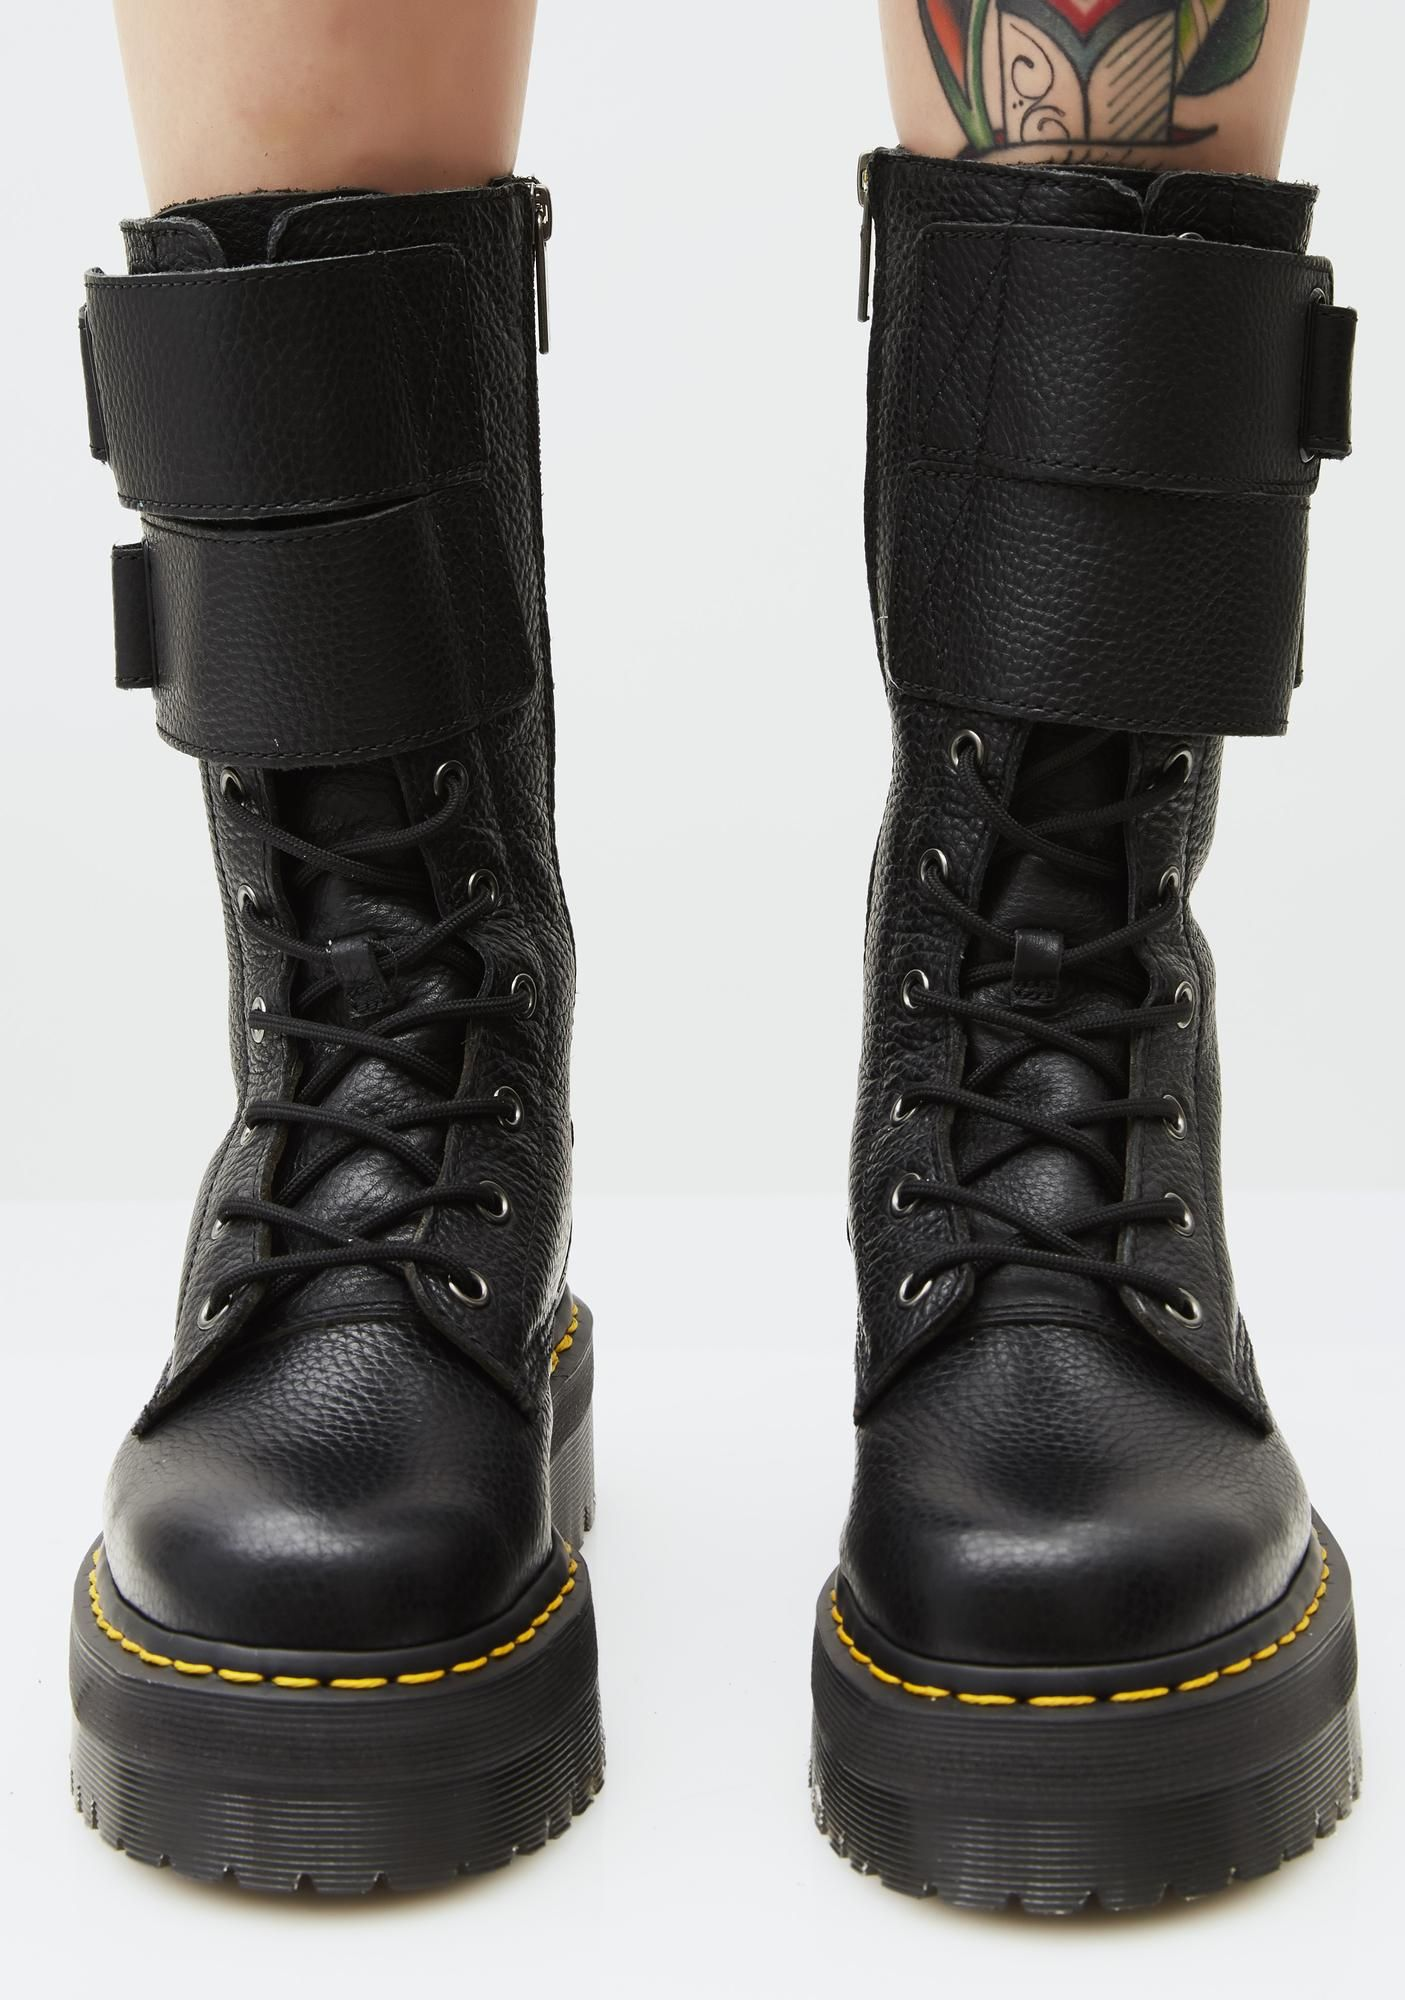 58d3ff25ee Jagger Boots | What I would wear... | Boots, Shoes és Fashion